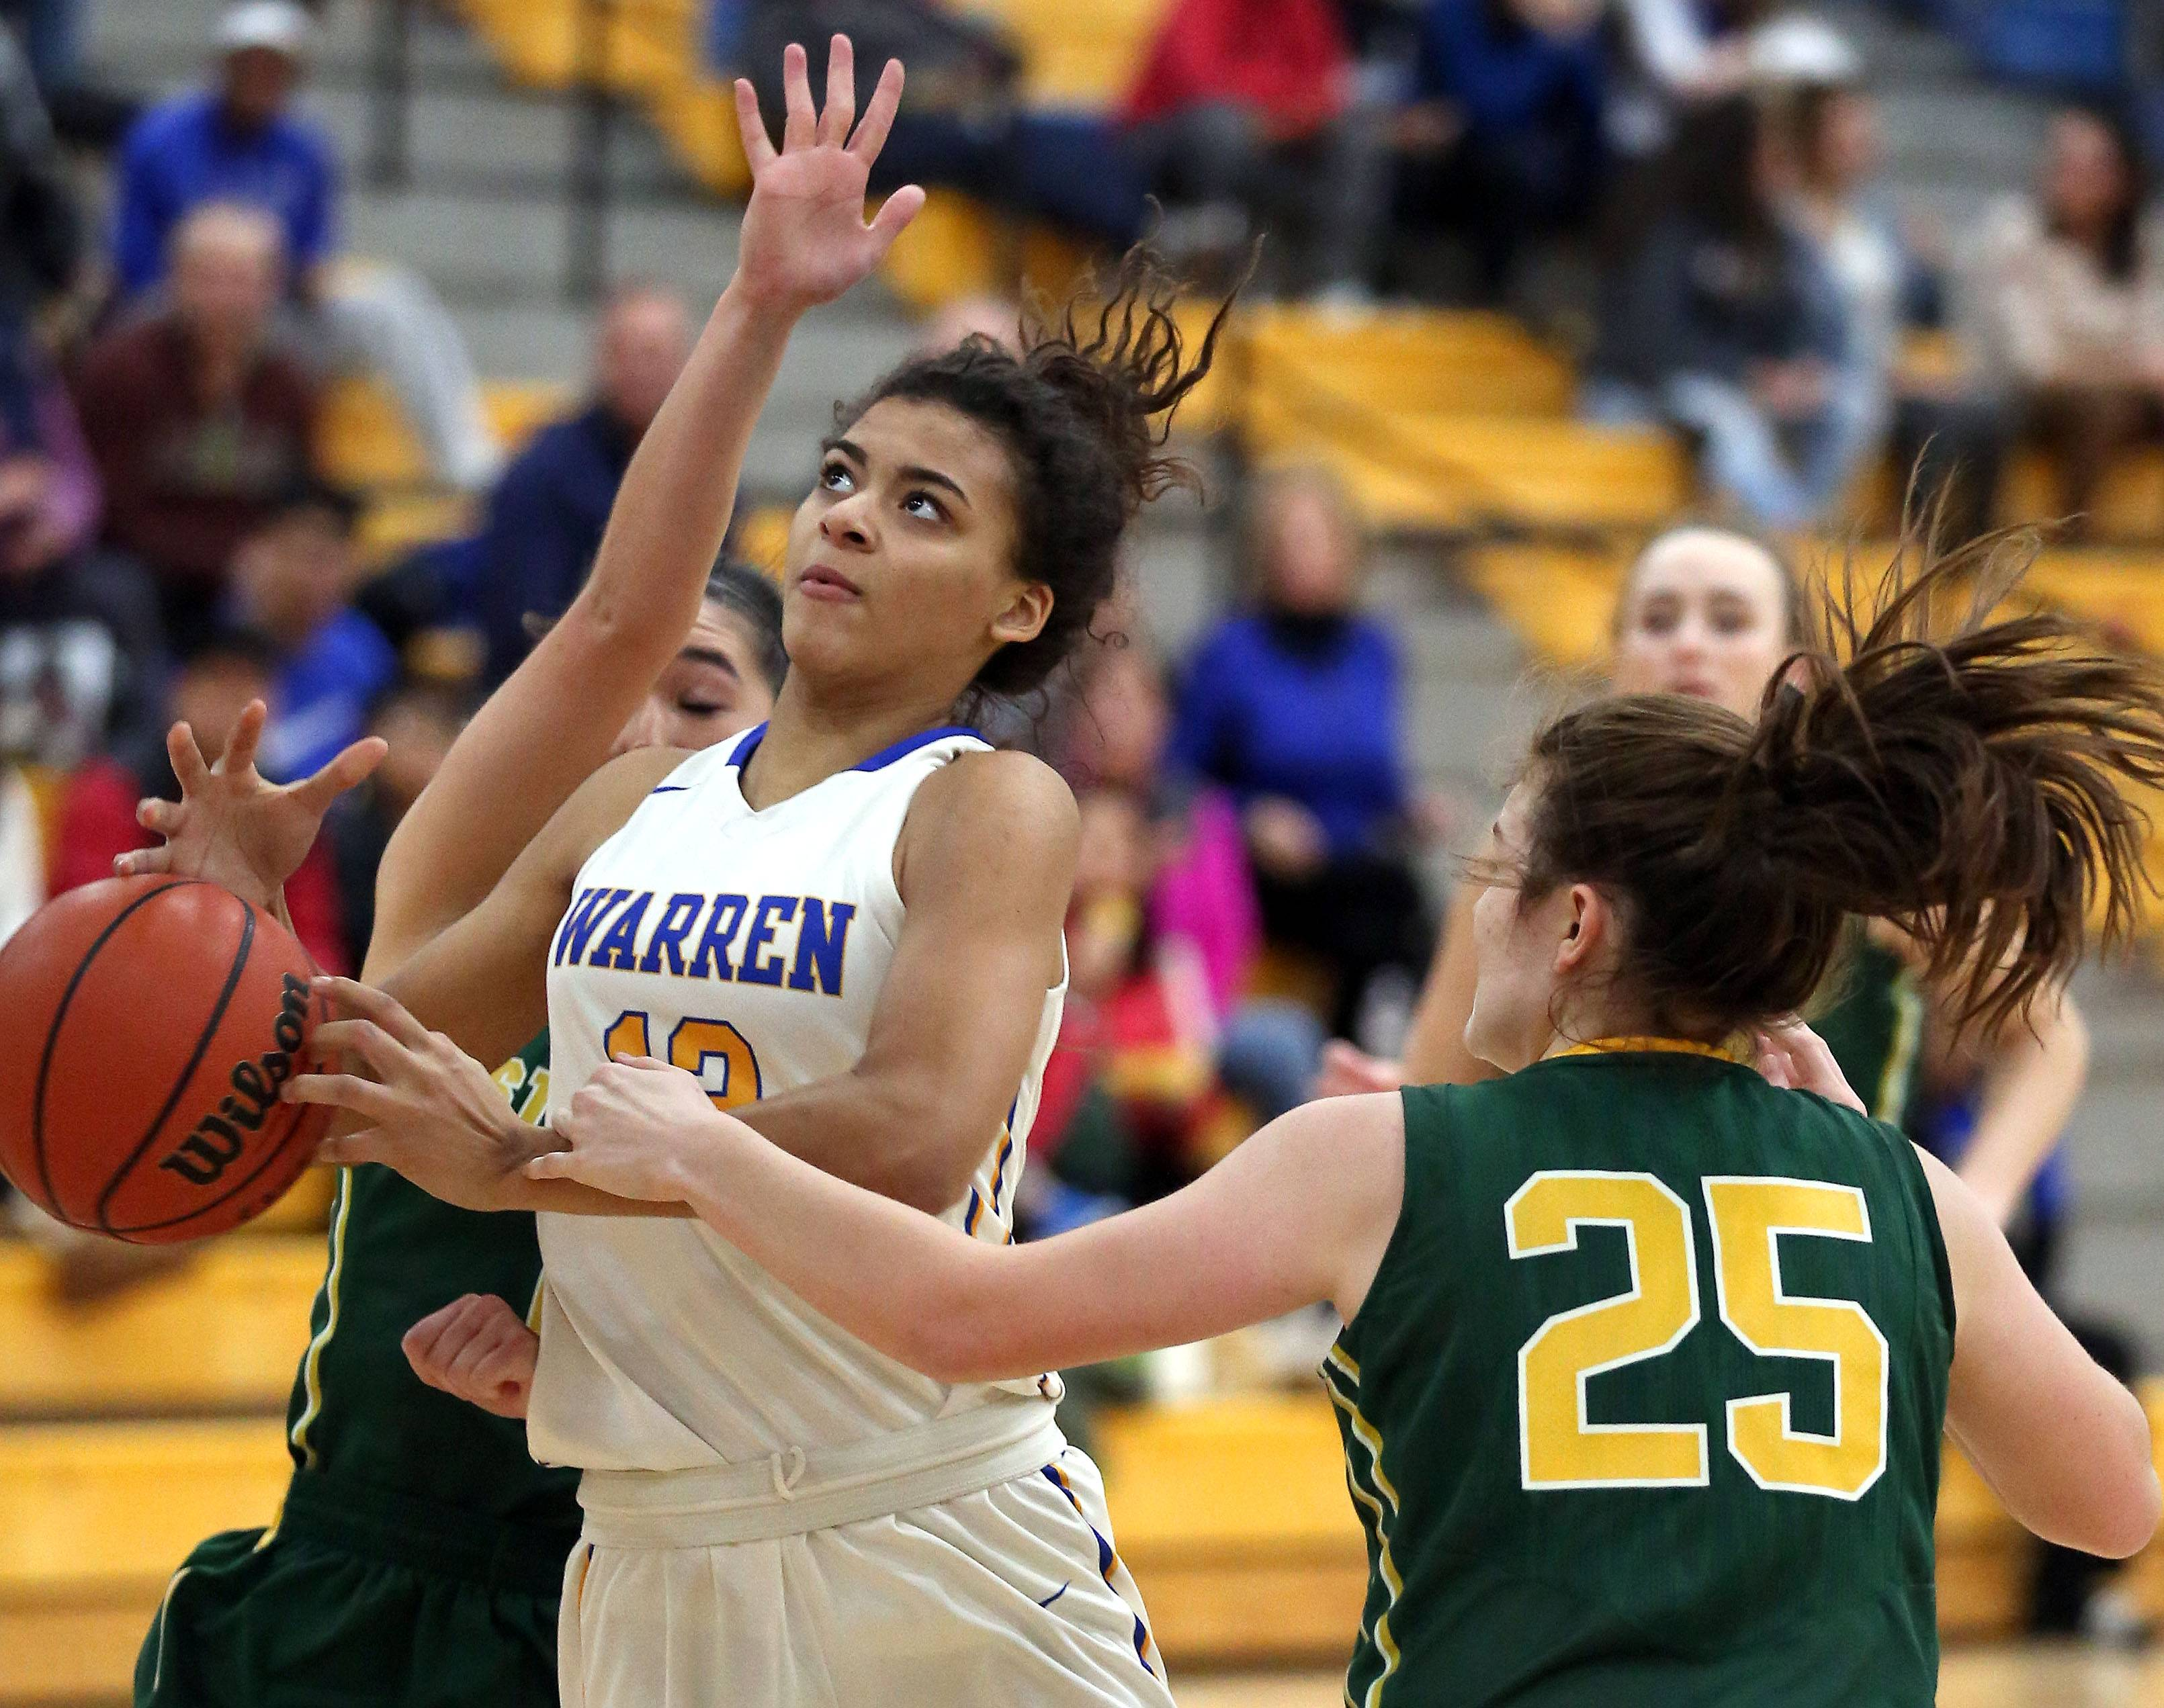 Warren's Kaylen Dickson, left, drives on Stevenson's Ashley Richardson.